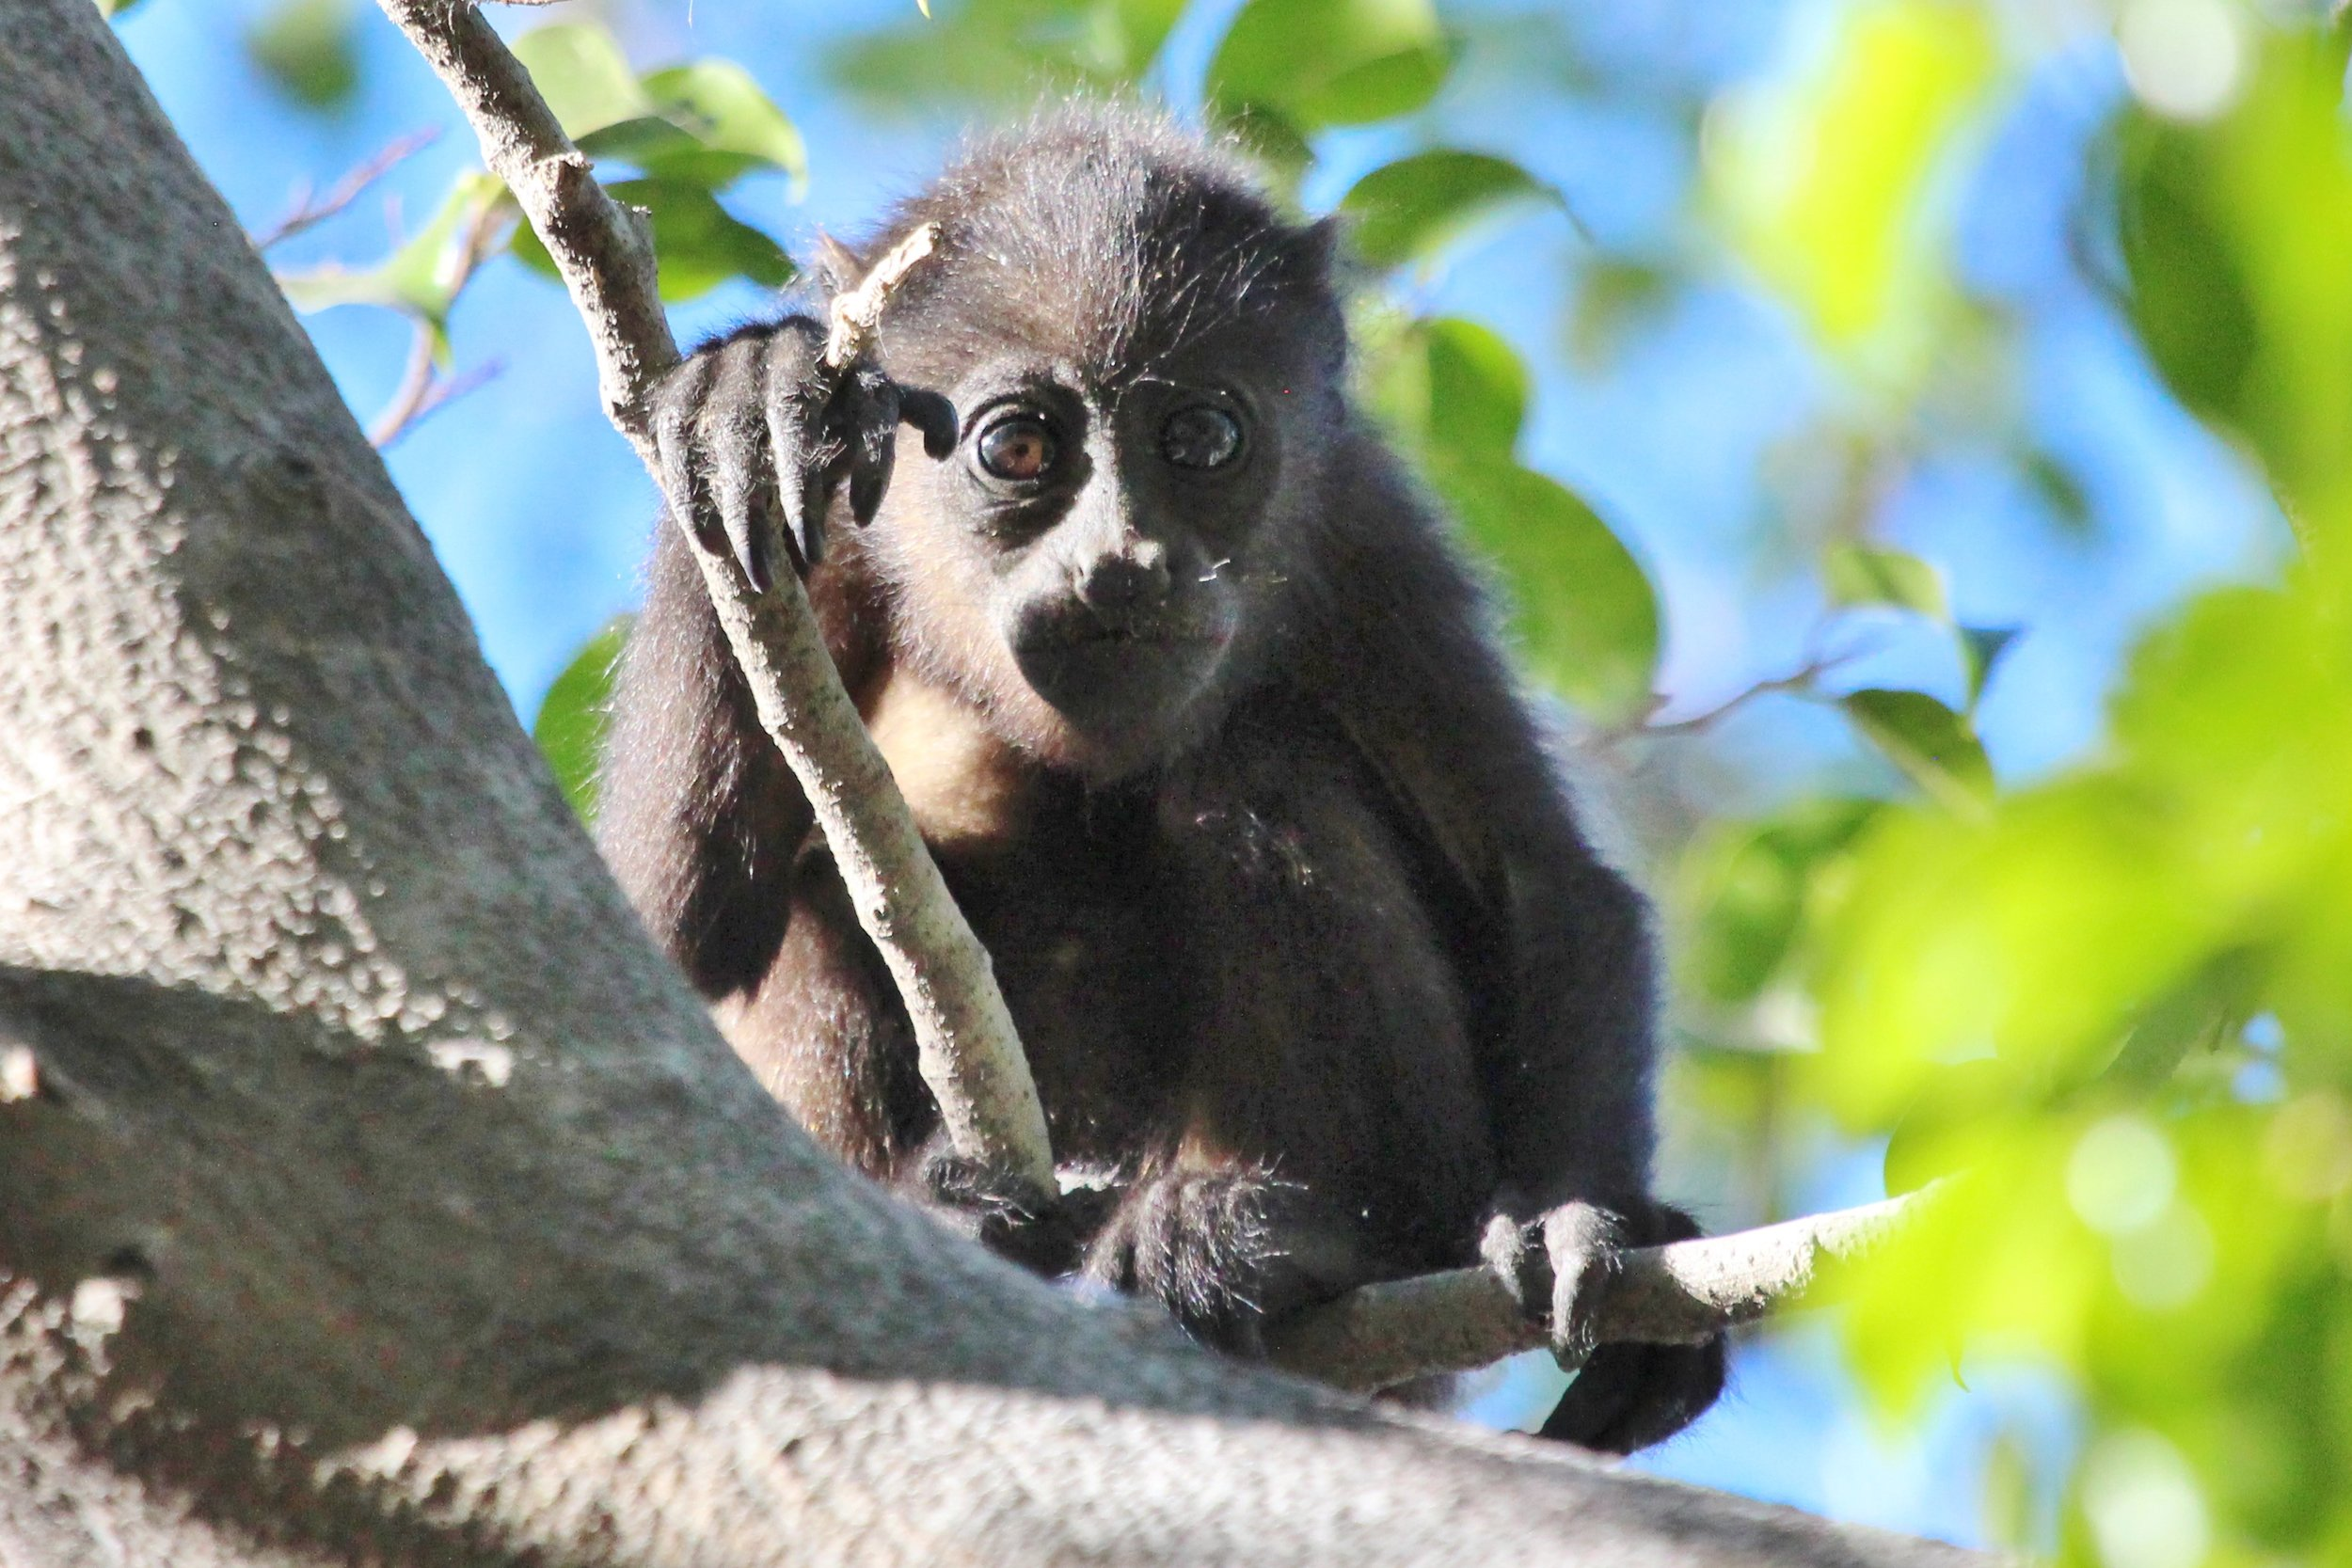 This little guy was so cute! Howler monkeys are primarily leaf eaters, so they're pretty slow moving.